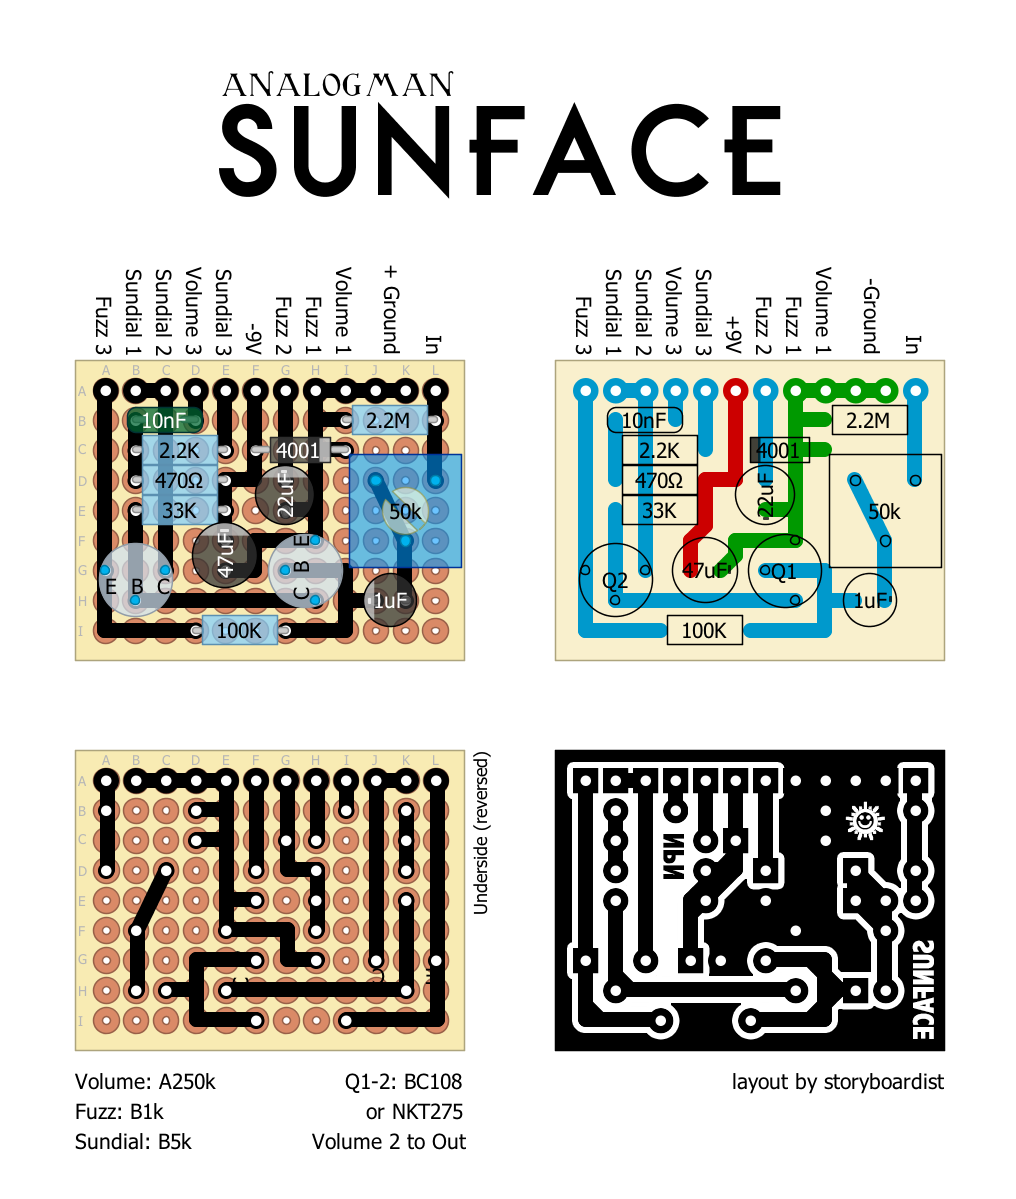 analogman sunface fuzz schematic: Perf and pcb effects layouts analogman sunface